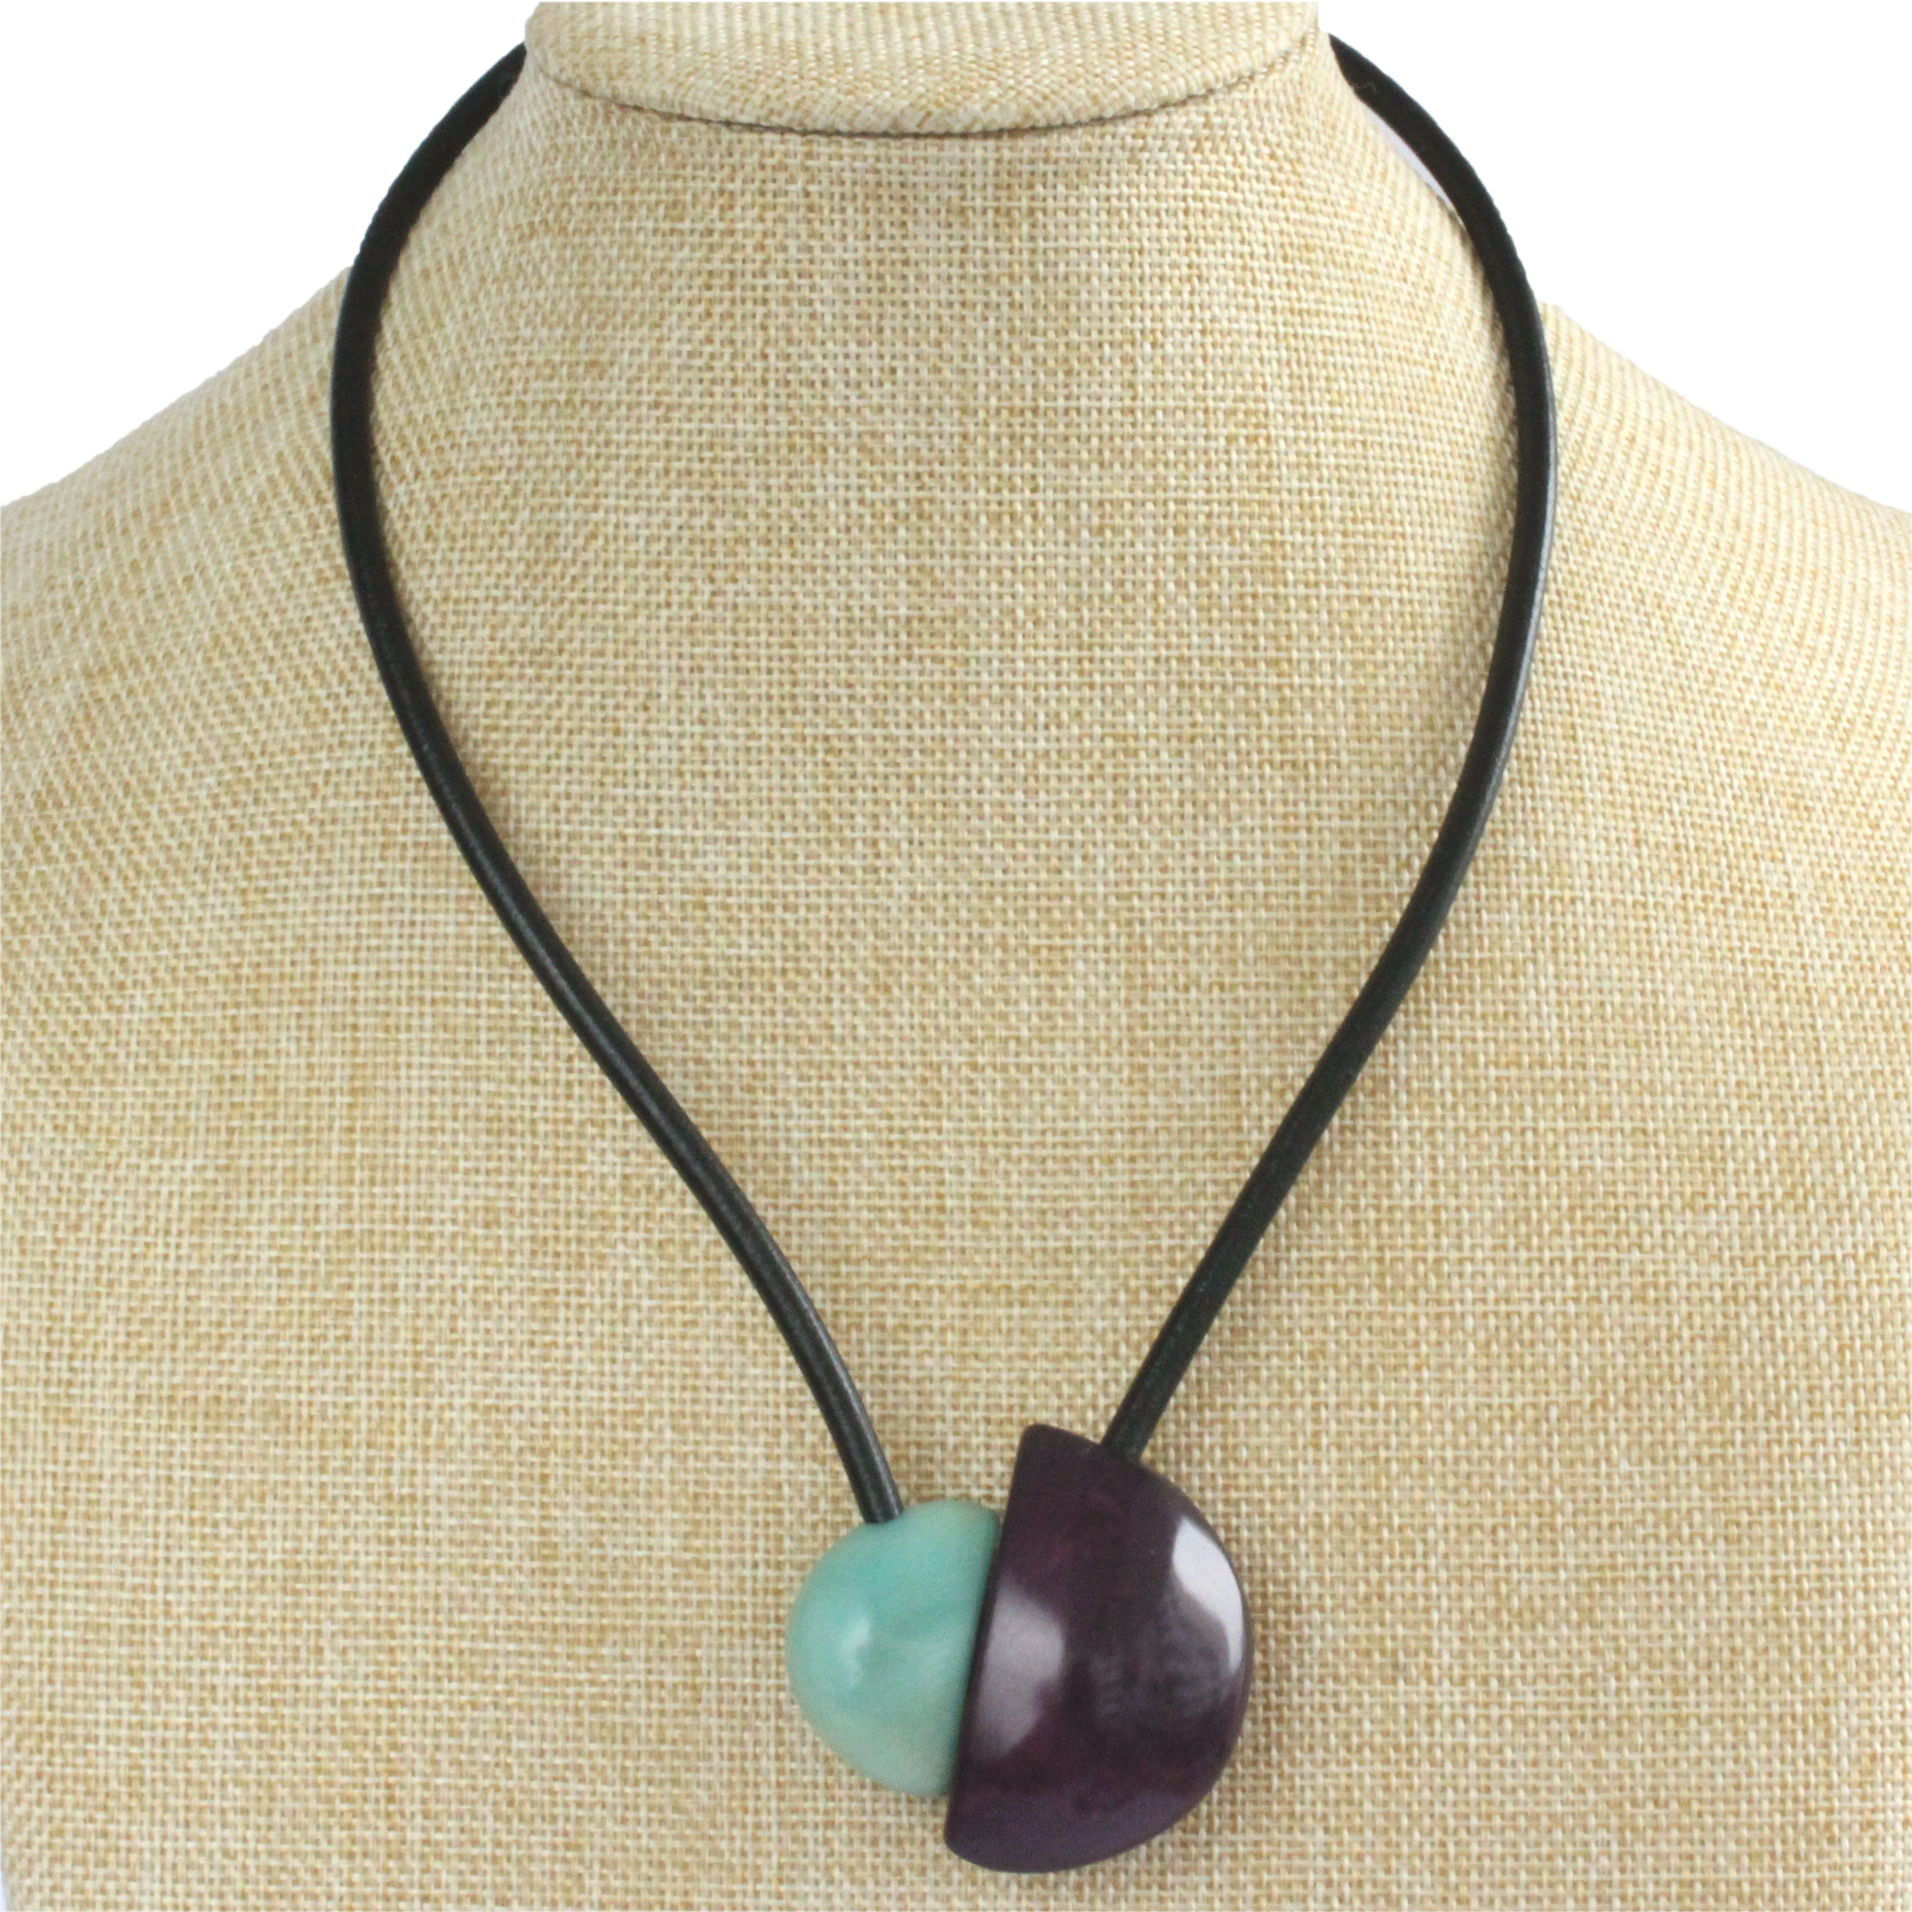 Handmade necklace, tagua nut, turquoise purple, stand, magnetic